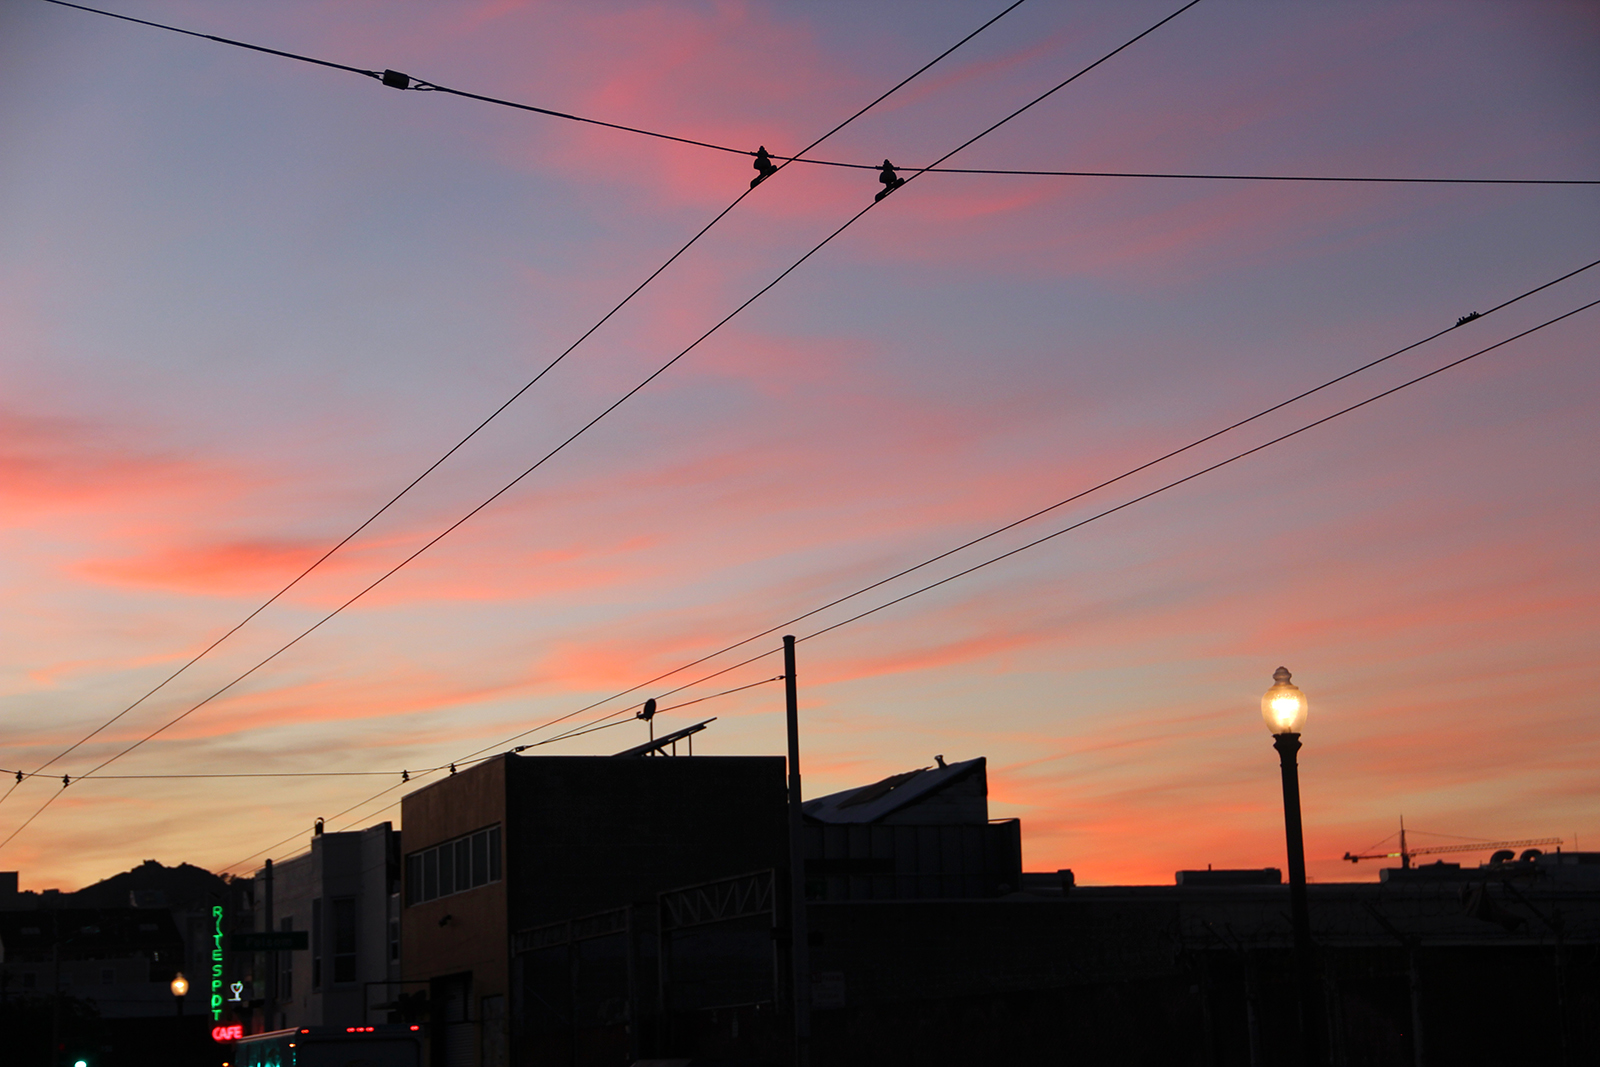 The sunset from 17th Street.